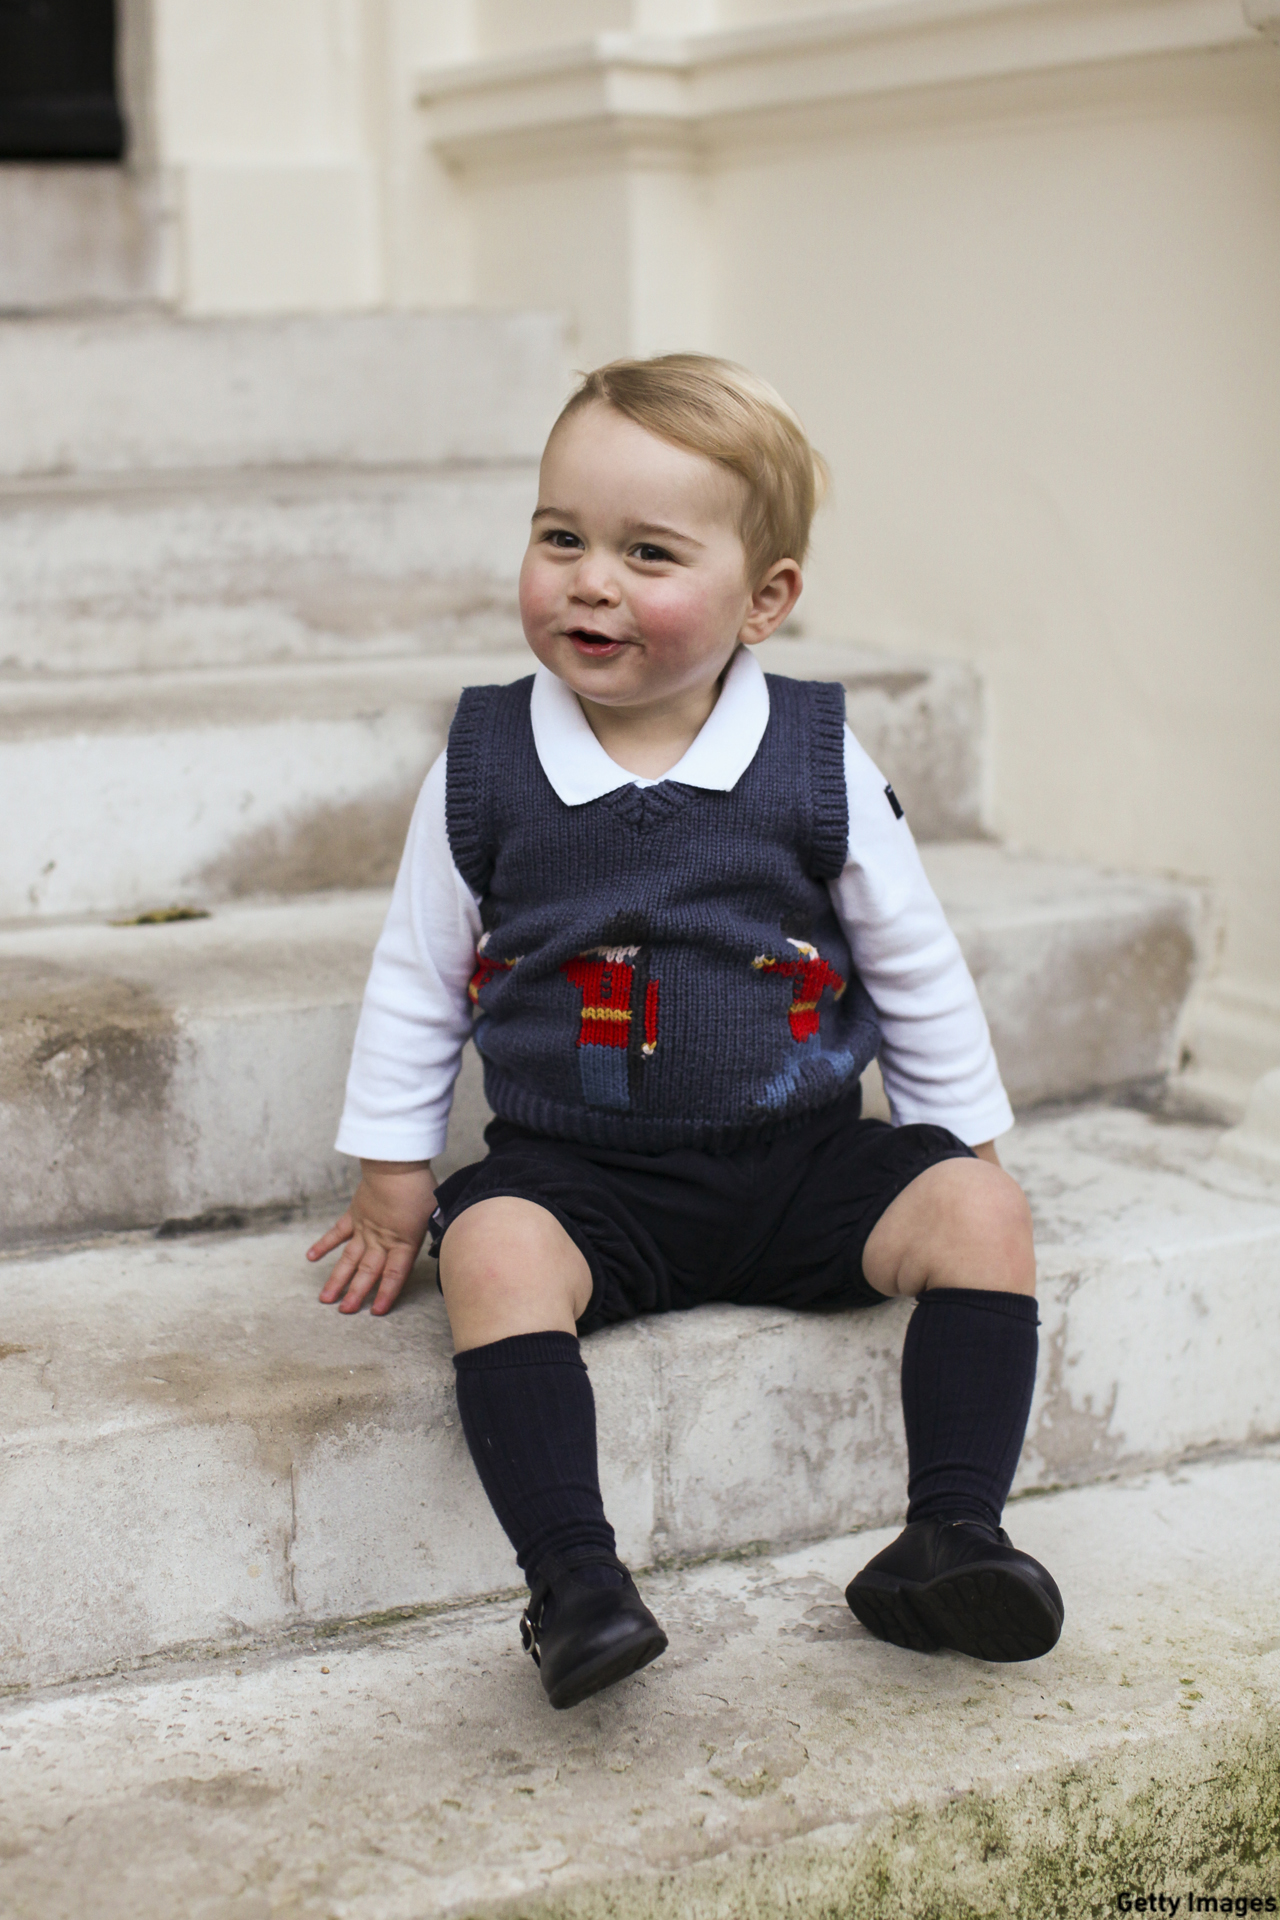 The young prince posed for his Chistmas photo with true grace in December 2014. (The Duke and Duchess of Cambridge/PA Wire via Getty Images)